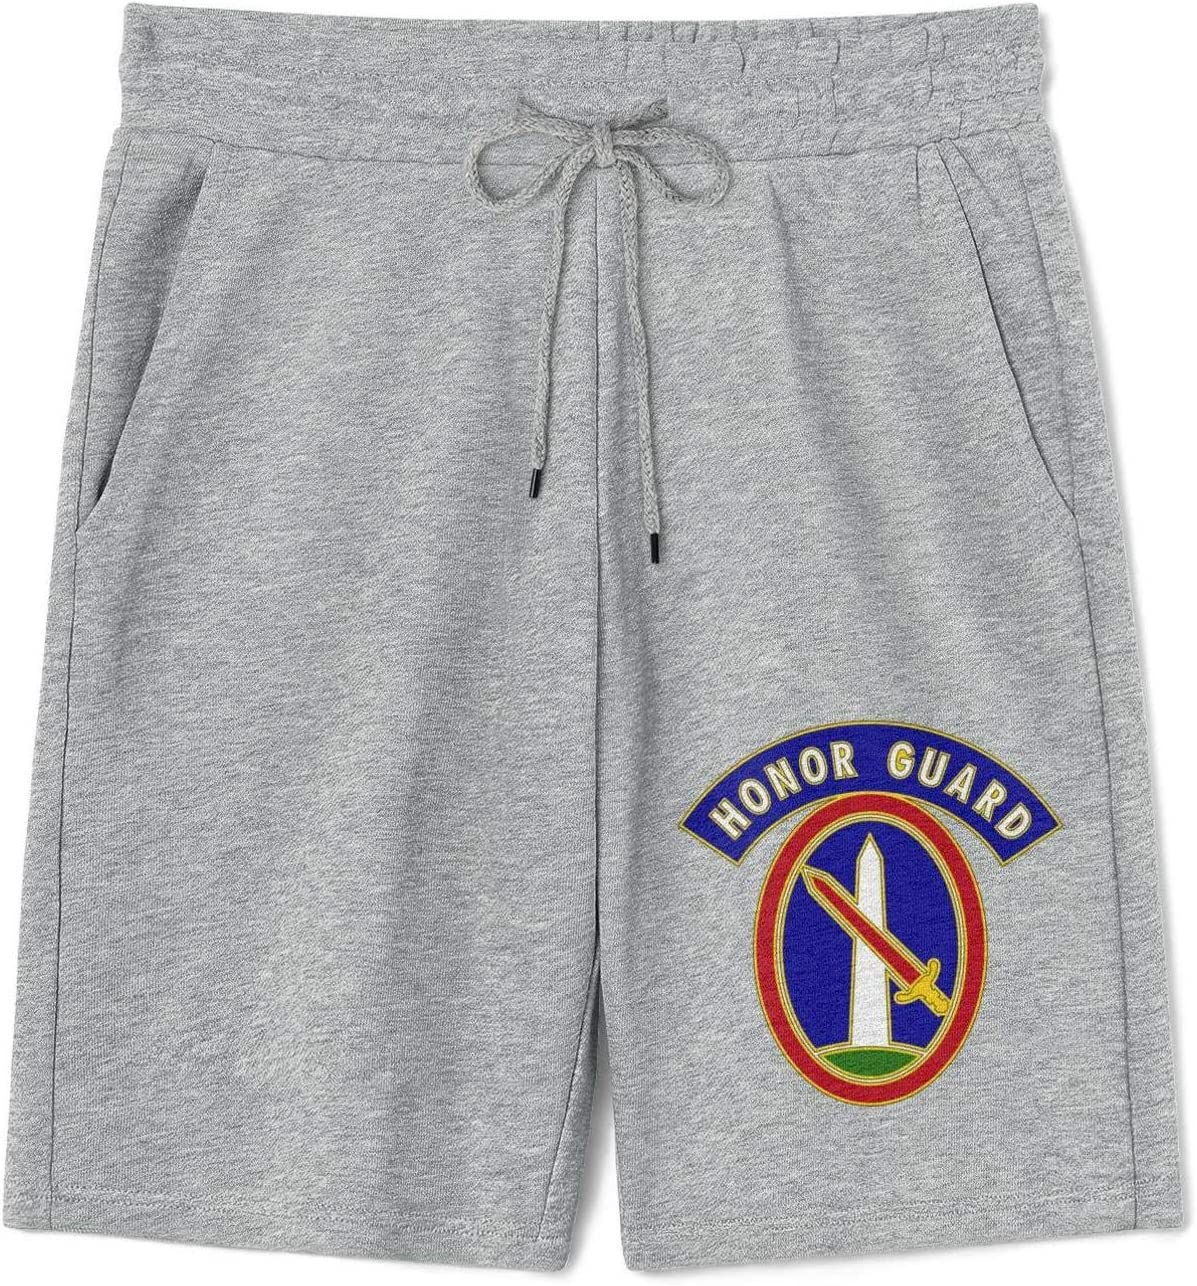 Mens Sports Shorts 3D-Operations-Support-Squadron- Cotton Short Athlete Drawstring Short with Pocket